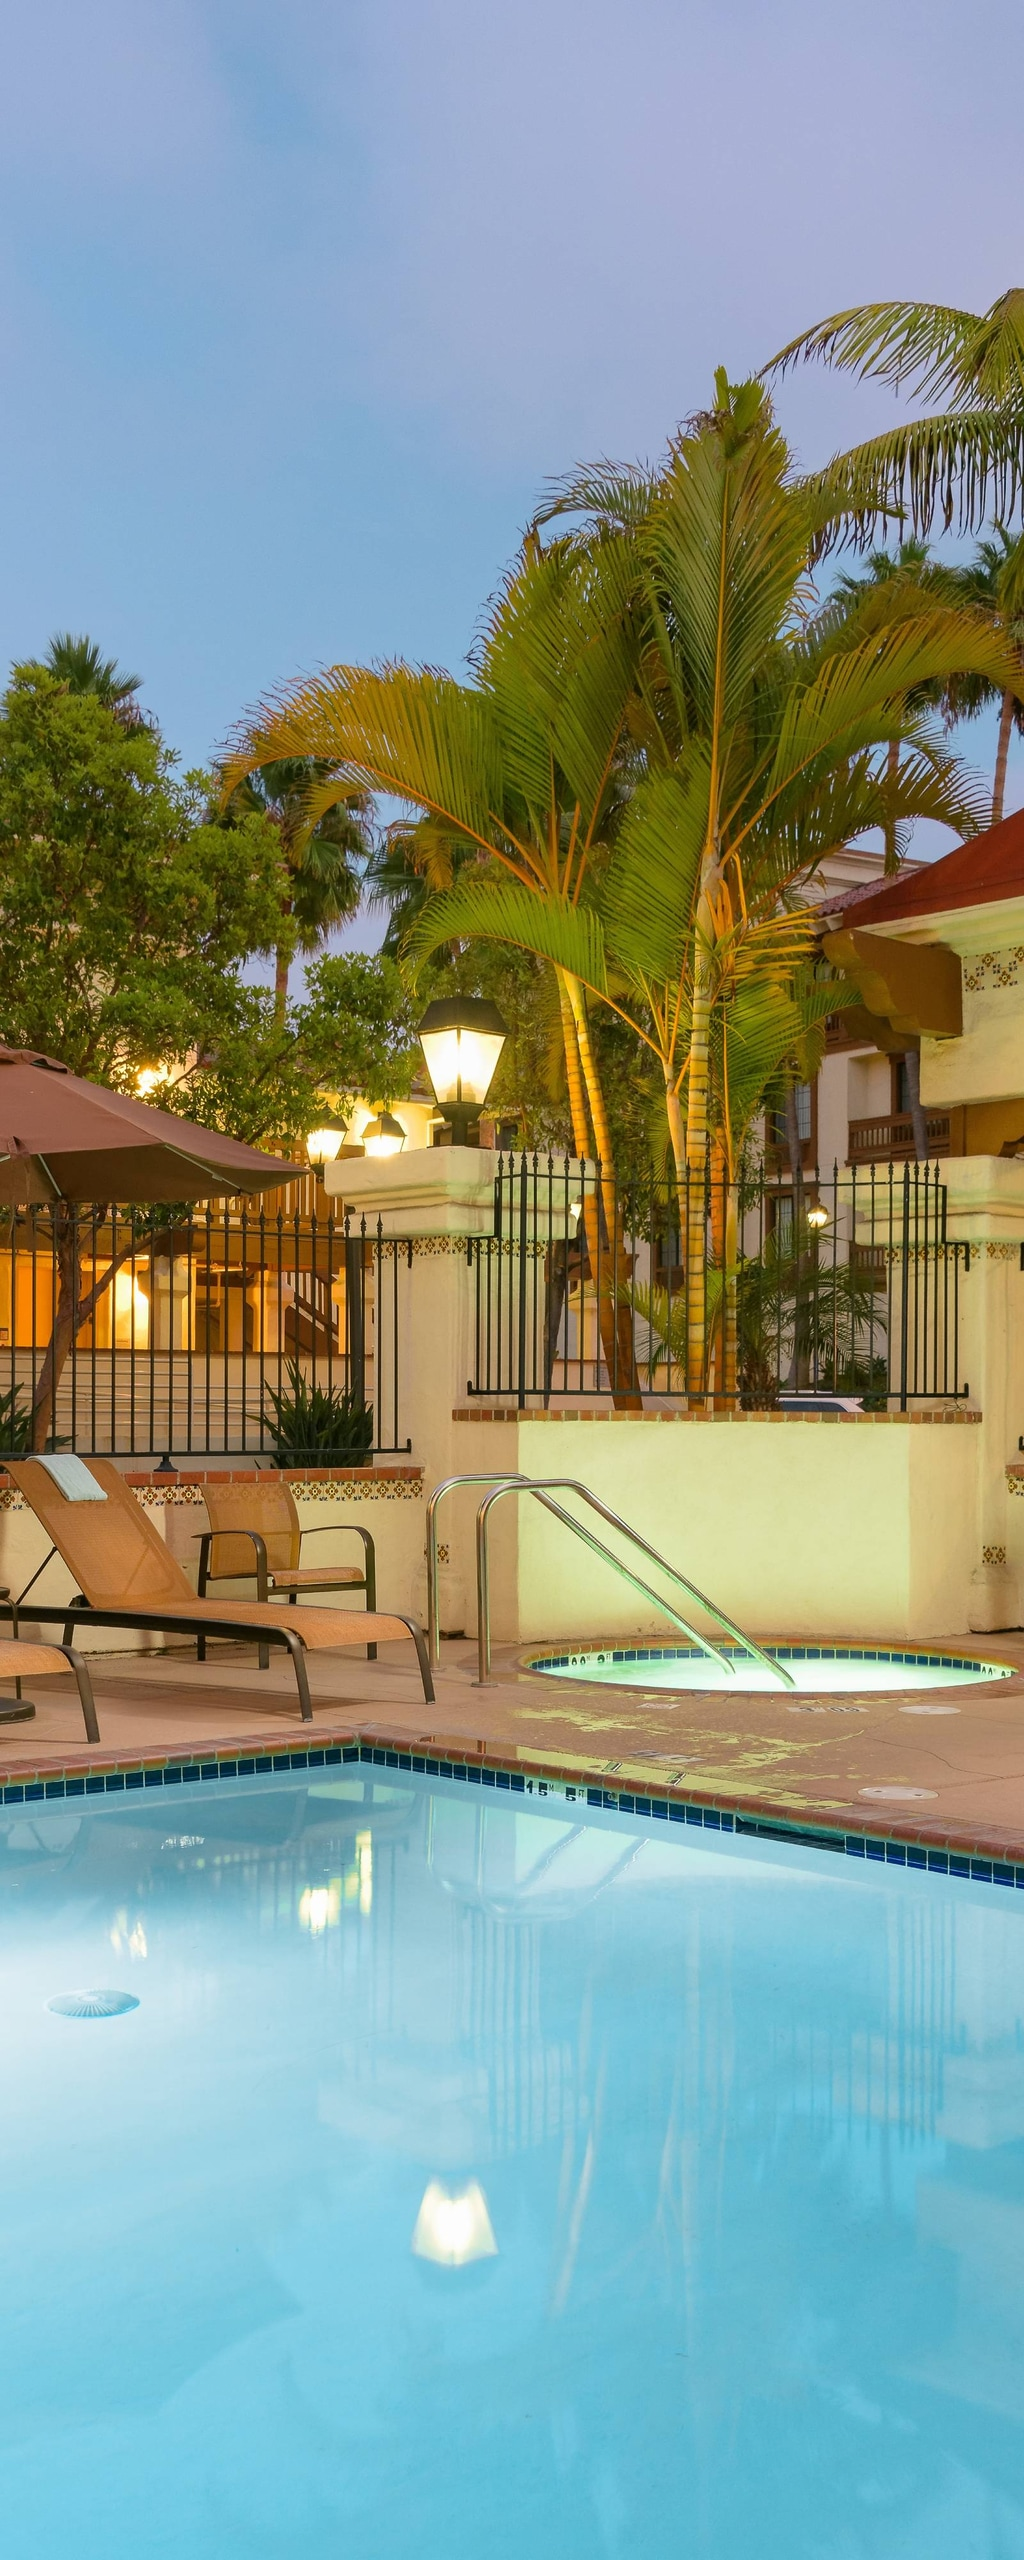 Old Town San Diego Hotels With Pool And Gym Courtyard San Diego Old Town